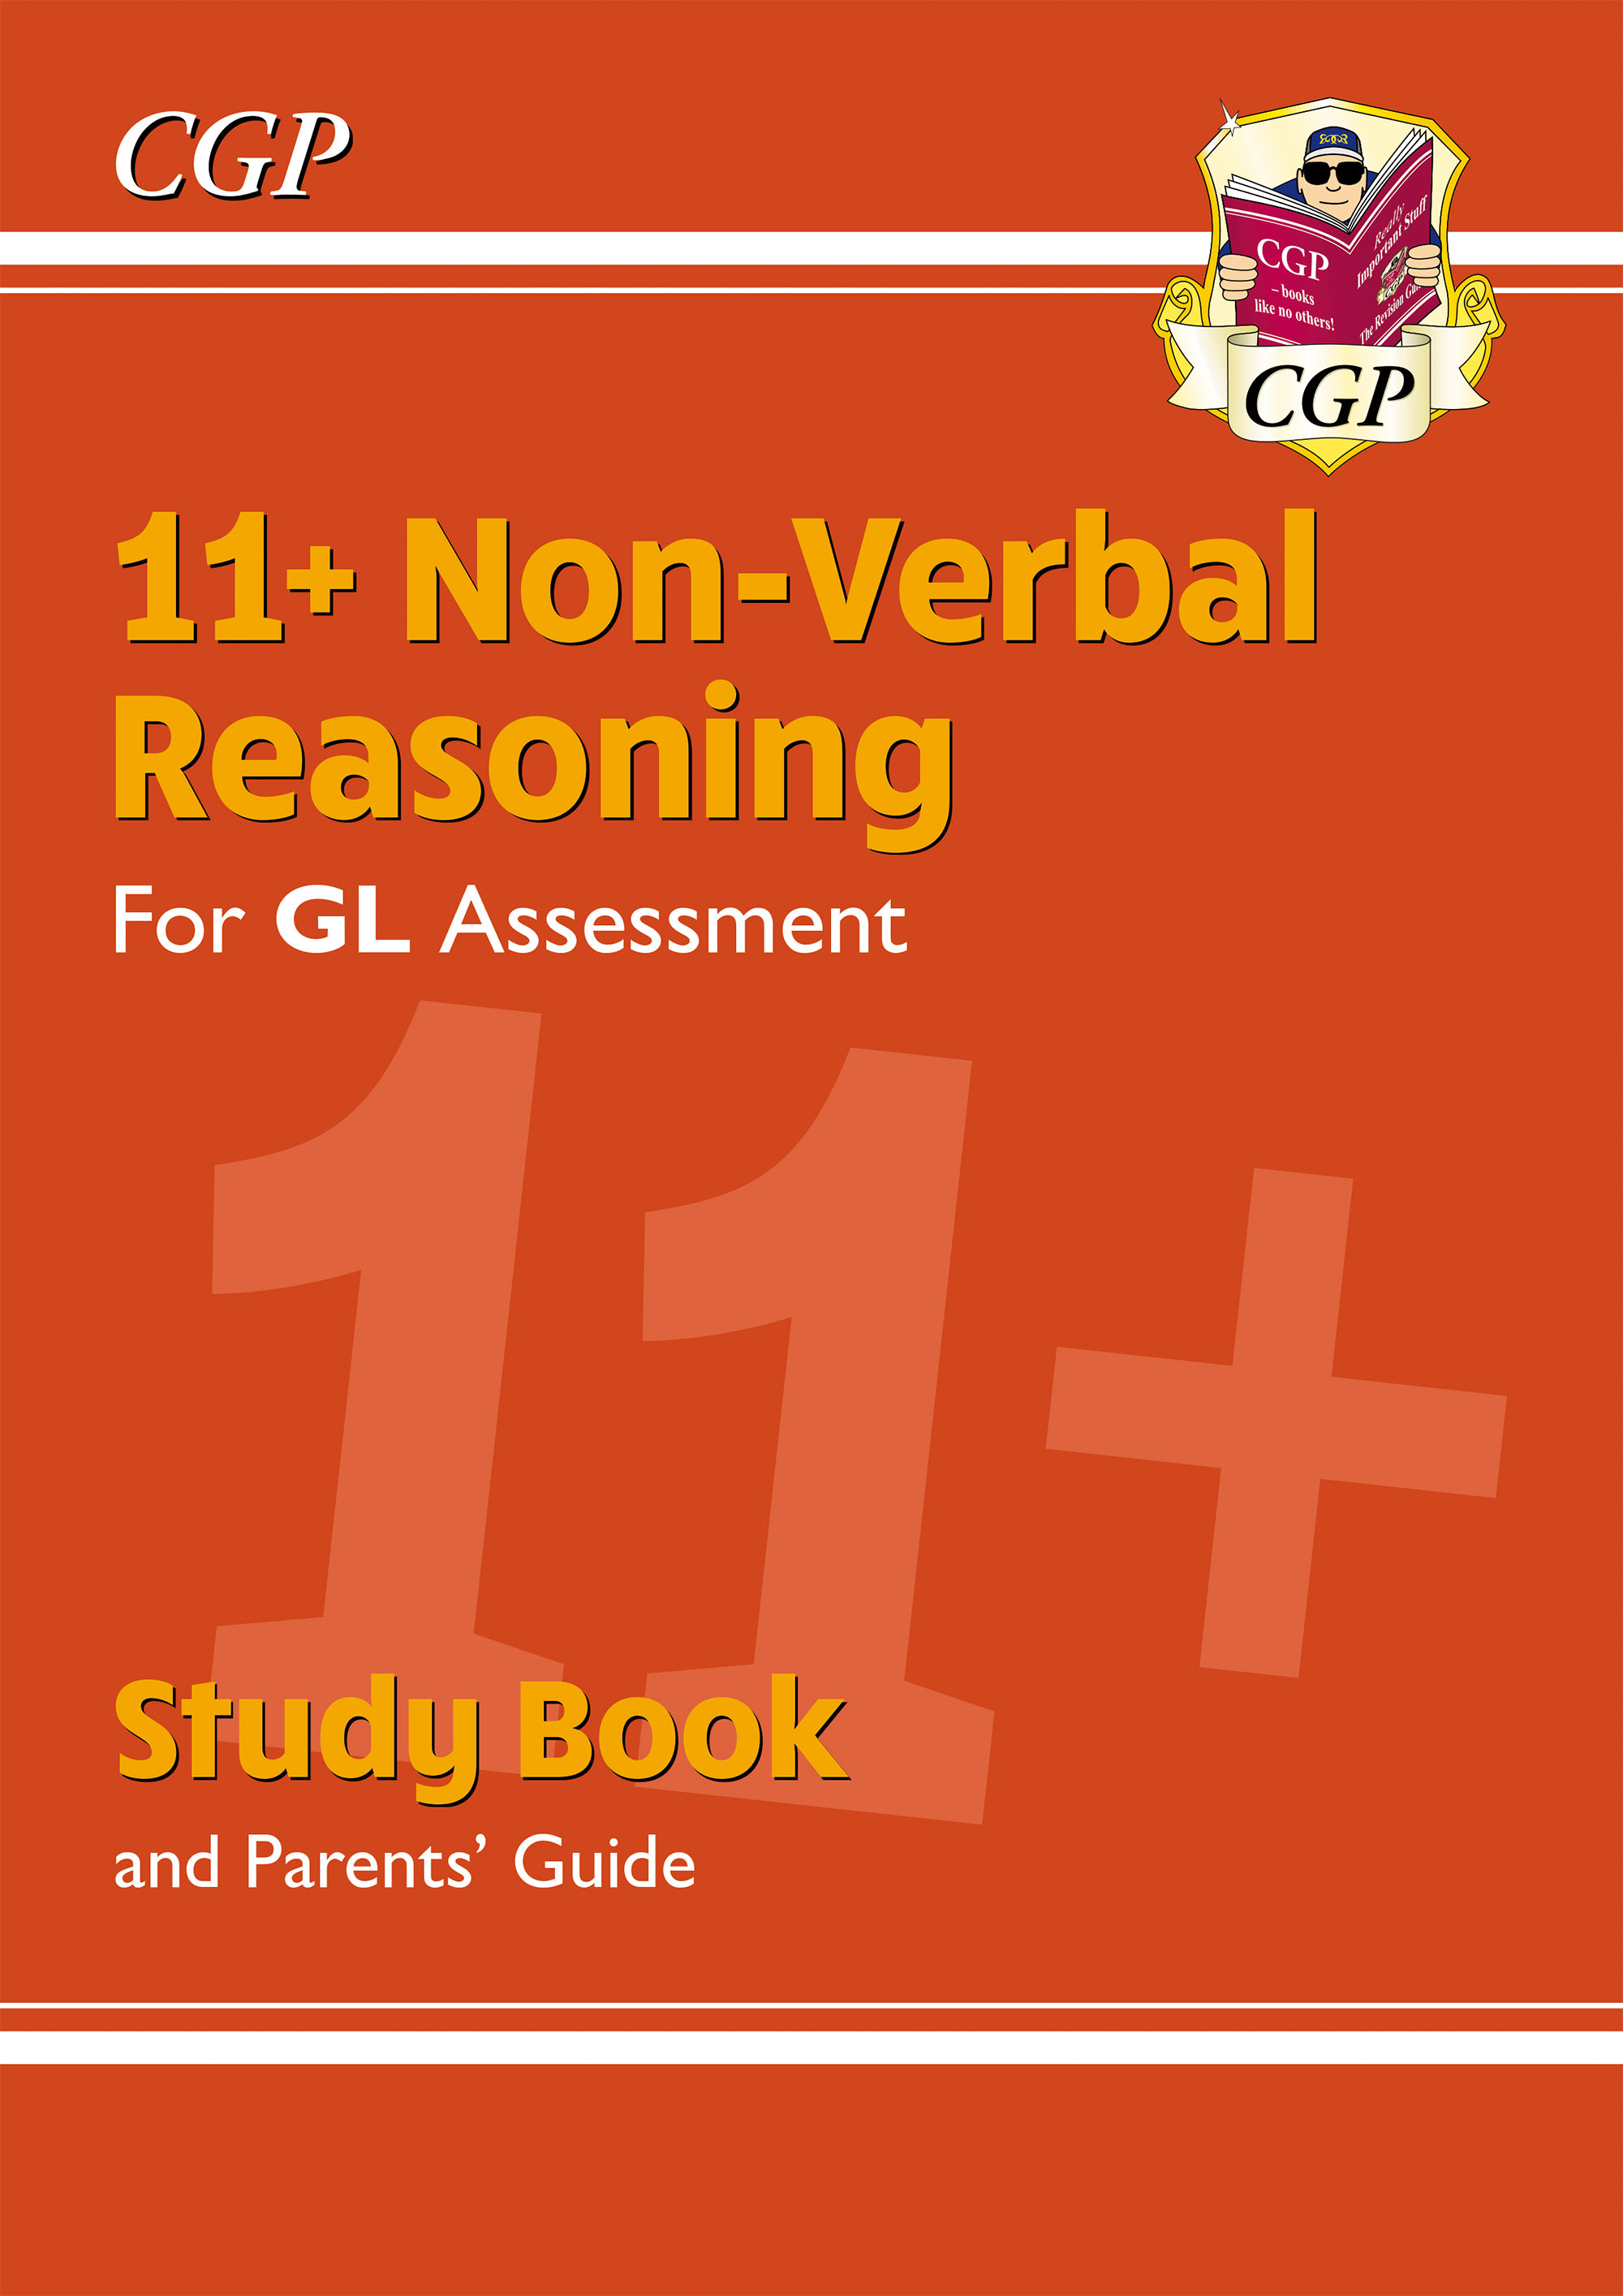 NHRE2DK - New 11+ GL Non-Verbal Reasoning Study Book (with Parents' Guide & Online Edition)